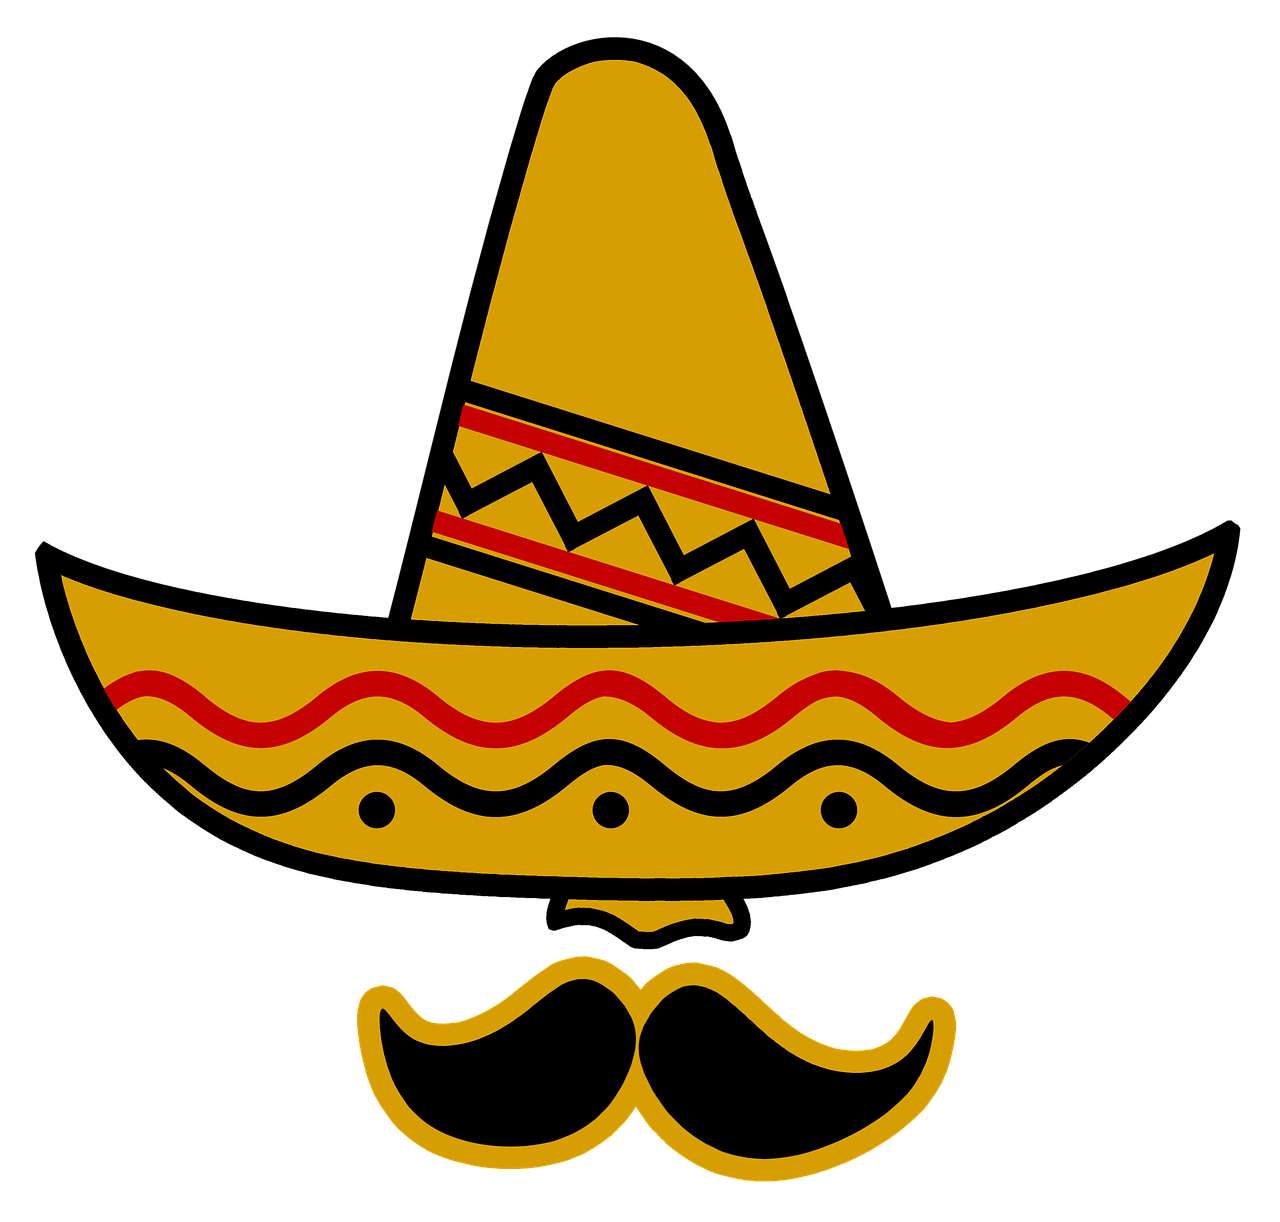 Free image on pixabay. Moustache clipart poncho mexican